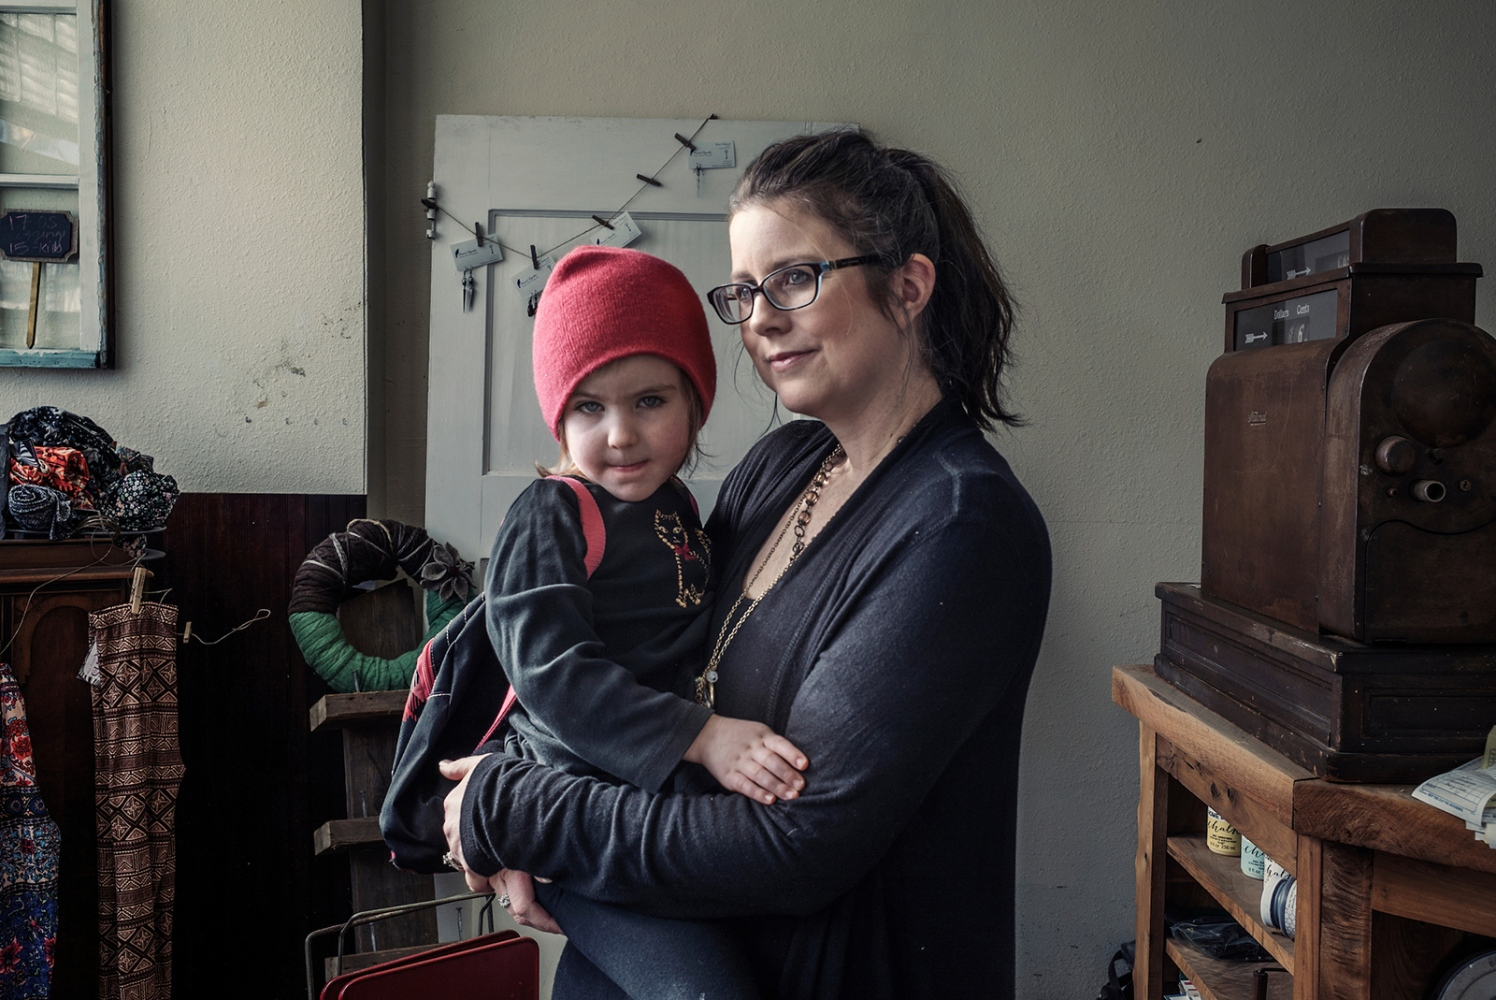 Kim and Amelia, Johnstown, Pennsylvania. Kim lives with her family in Johnstown. In Johnstown poverty rate is 34 percent, more than double the national figure, and in the last years Johnstown suffering from a rapidly declining population. Cambria County, home to Johnstown, chose Barack Obama during the 2008 election, but went heavily for Donald Trump in 2016 and Mr. Trump won for over 60% of preference.  She hopes that Donald Trump does well, but she told me that people wish him to fail.